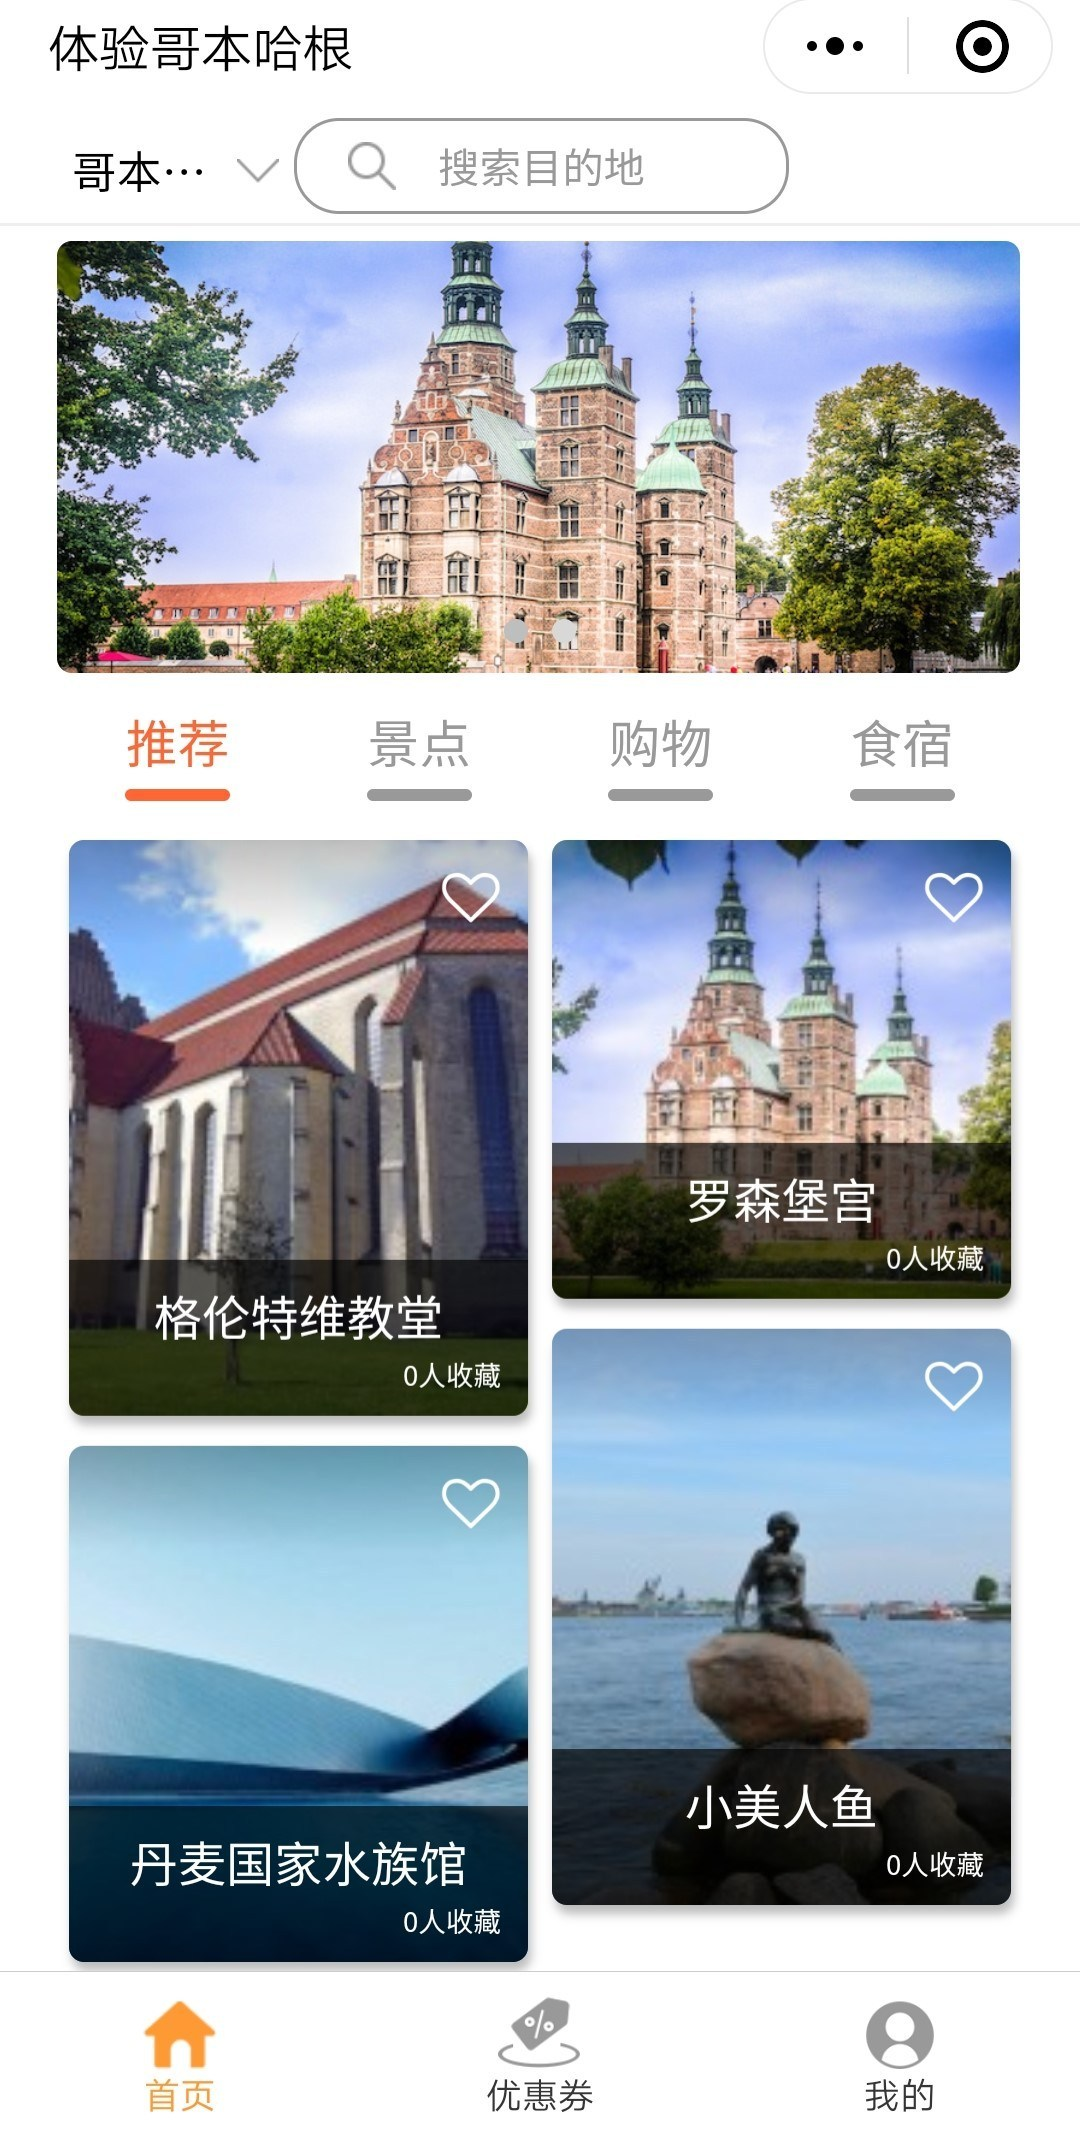 China-based tourism Wechat mini-program - EuroPass